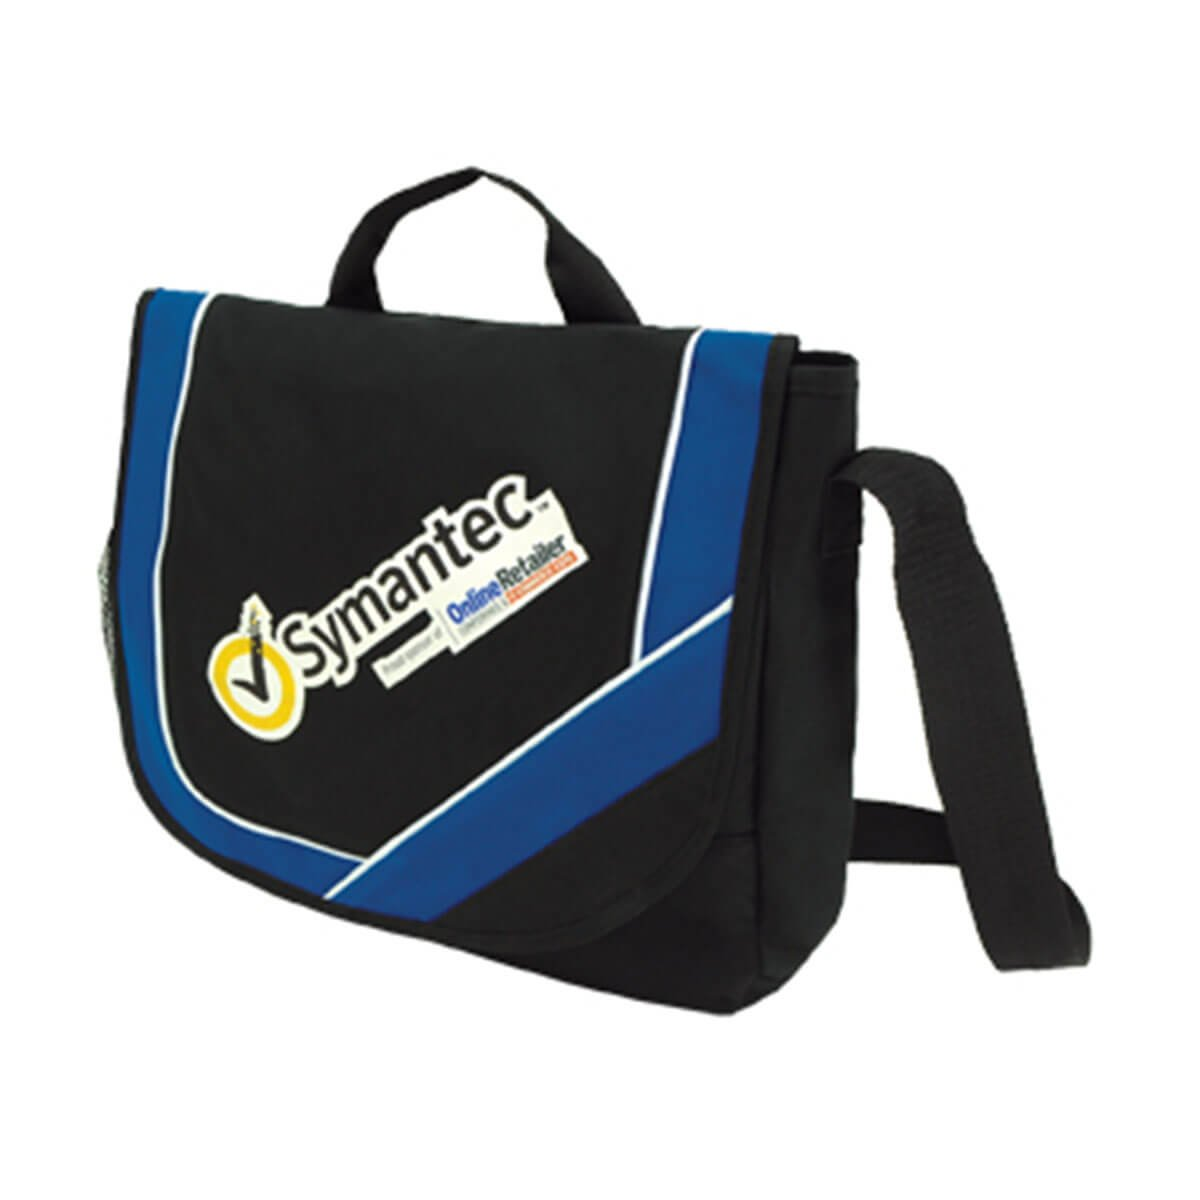 Calibre Conference Bag-Black / White / Royal